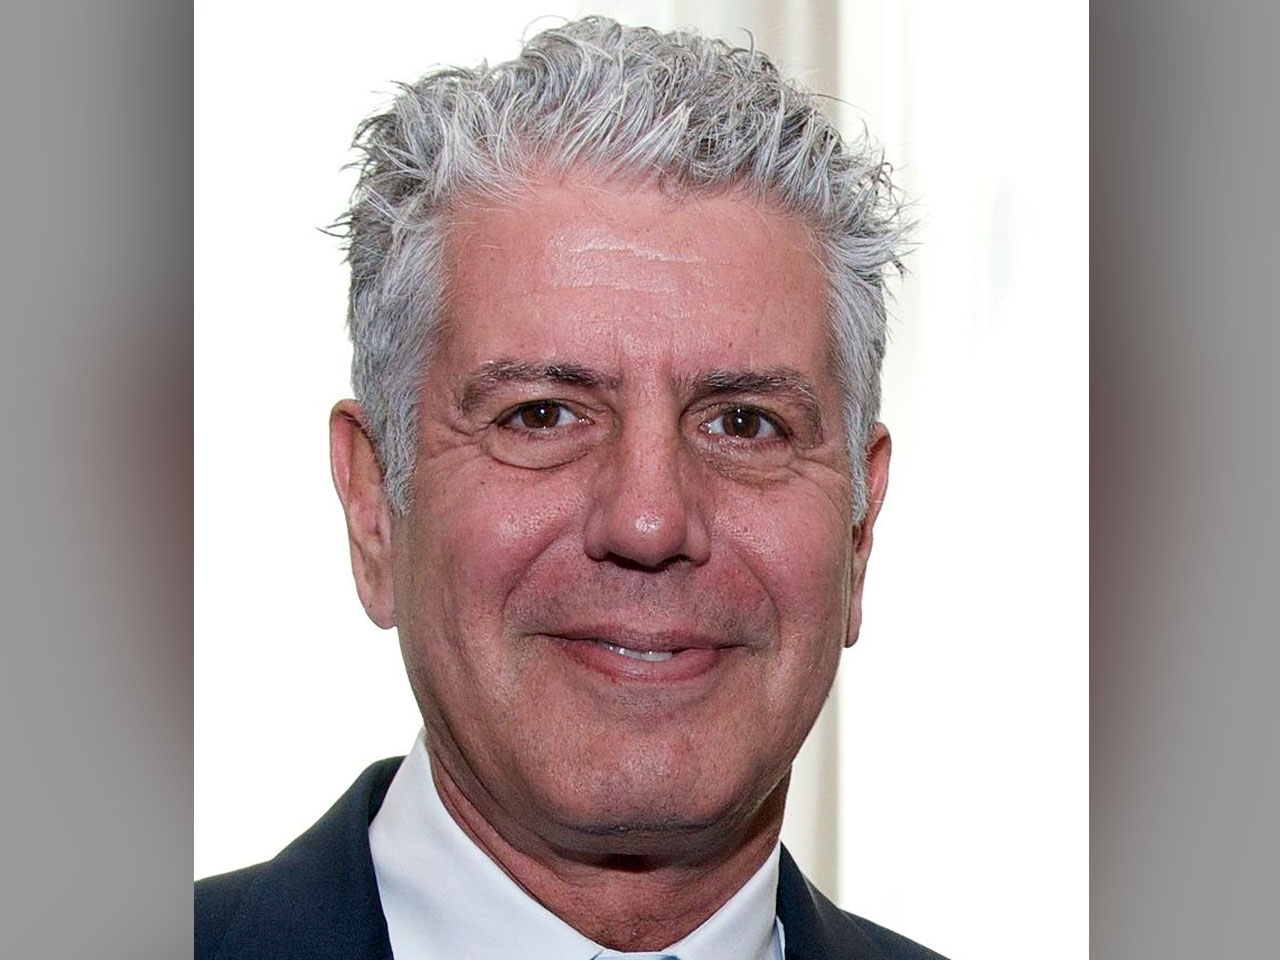 Celebrity chef Anthony Bourdain has died aged 61